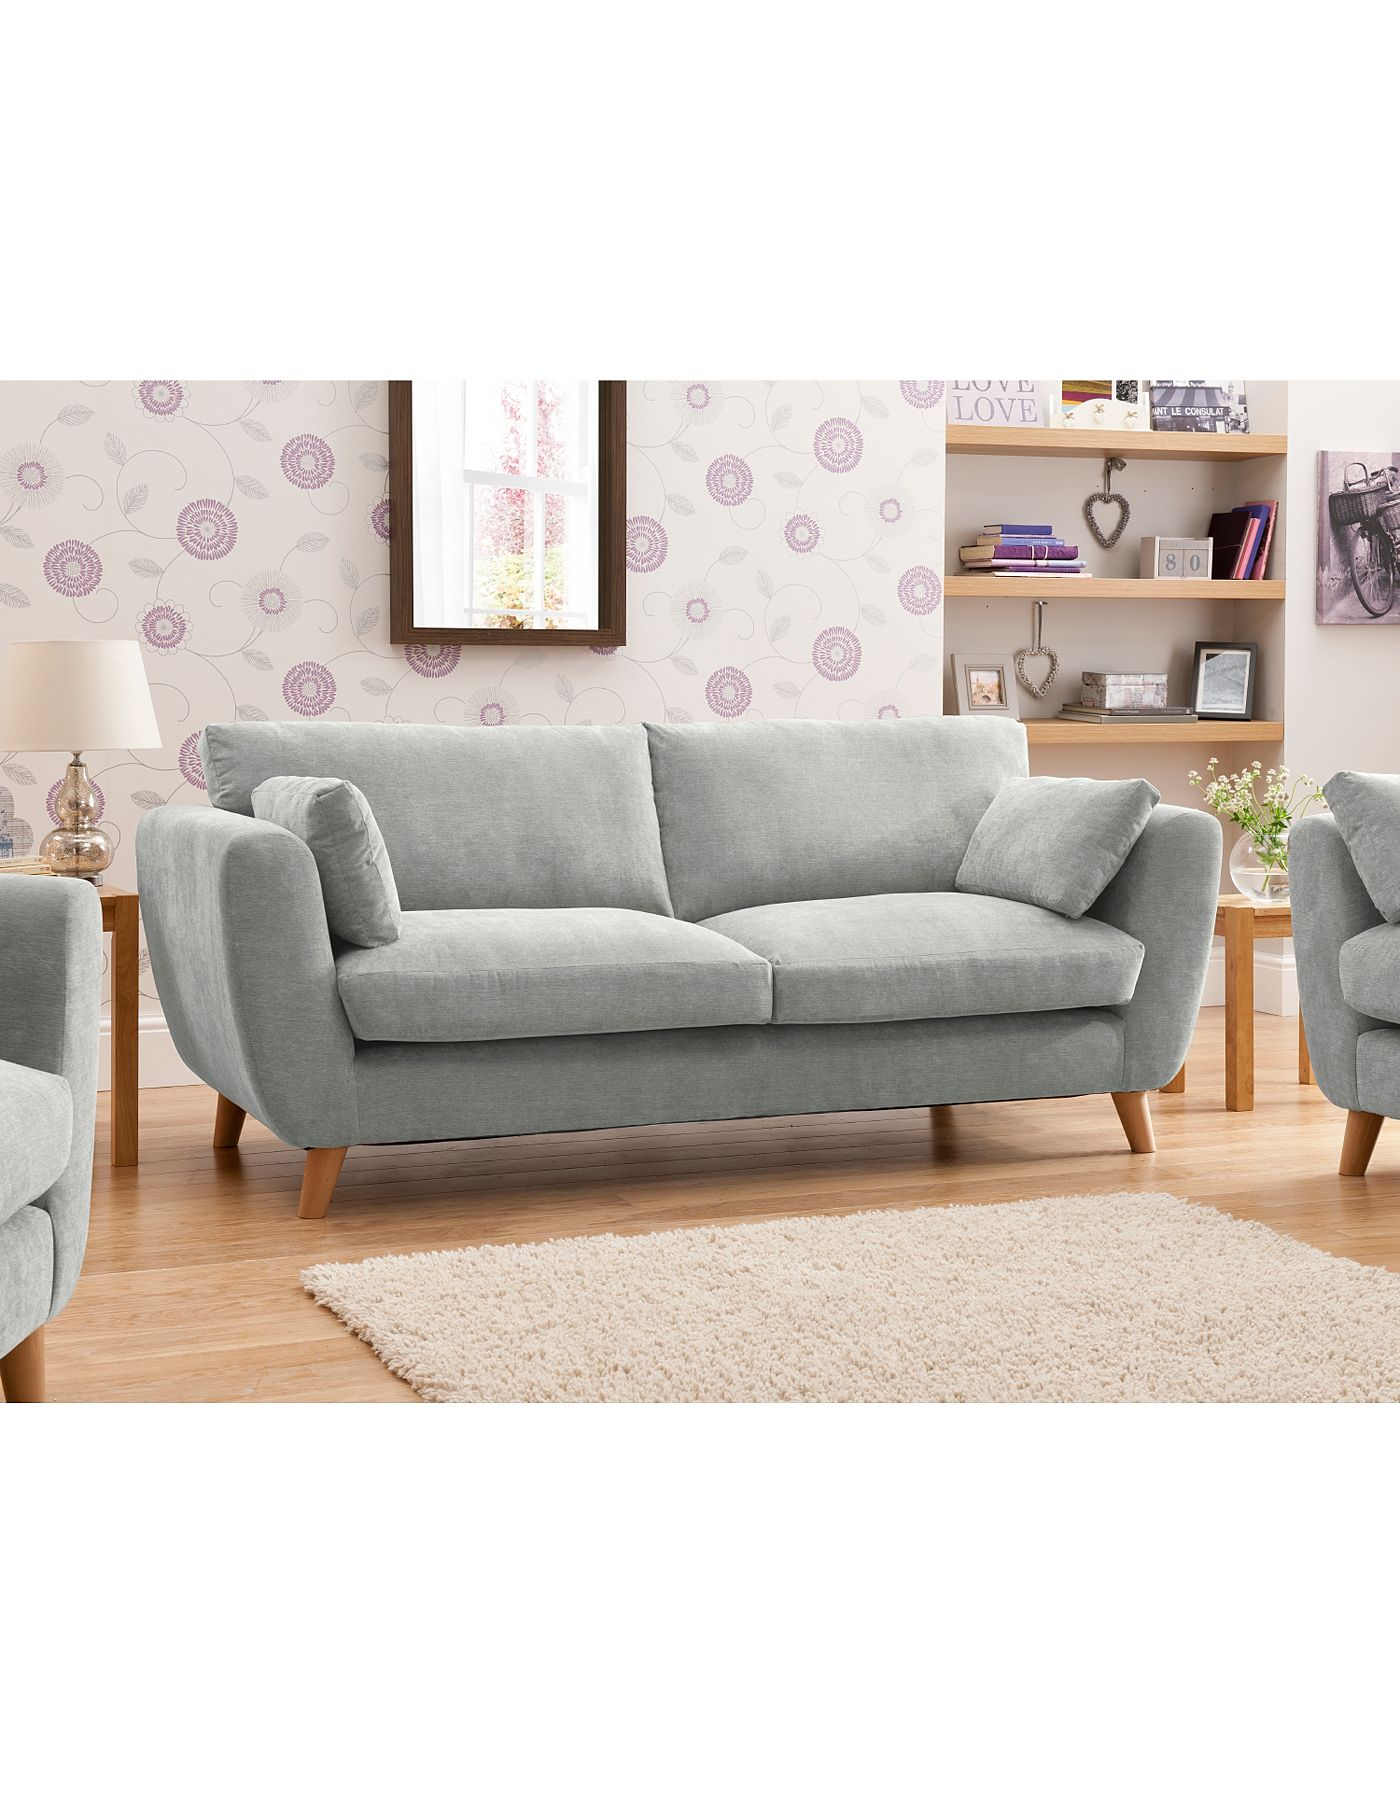 Sloane Large Sofa in Green | Sofas & Armchairs | ASDA direct | Home ...